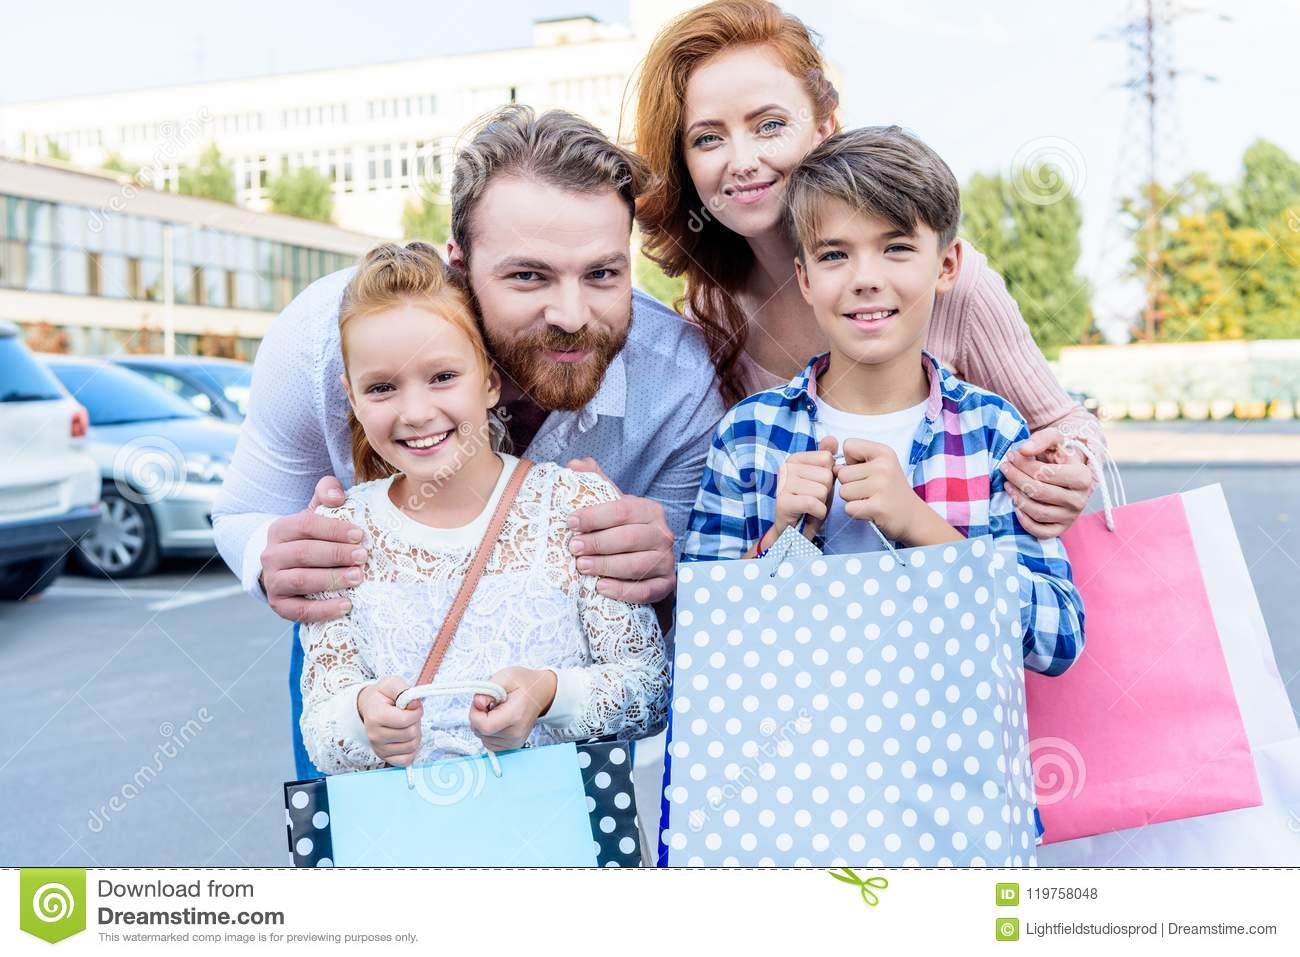 parents hugging children with shopping bags standing on street